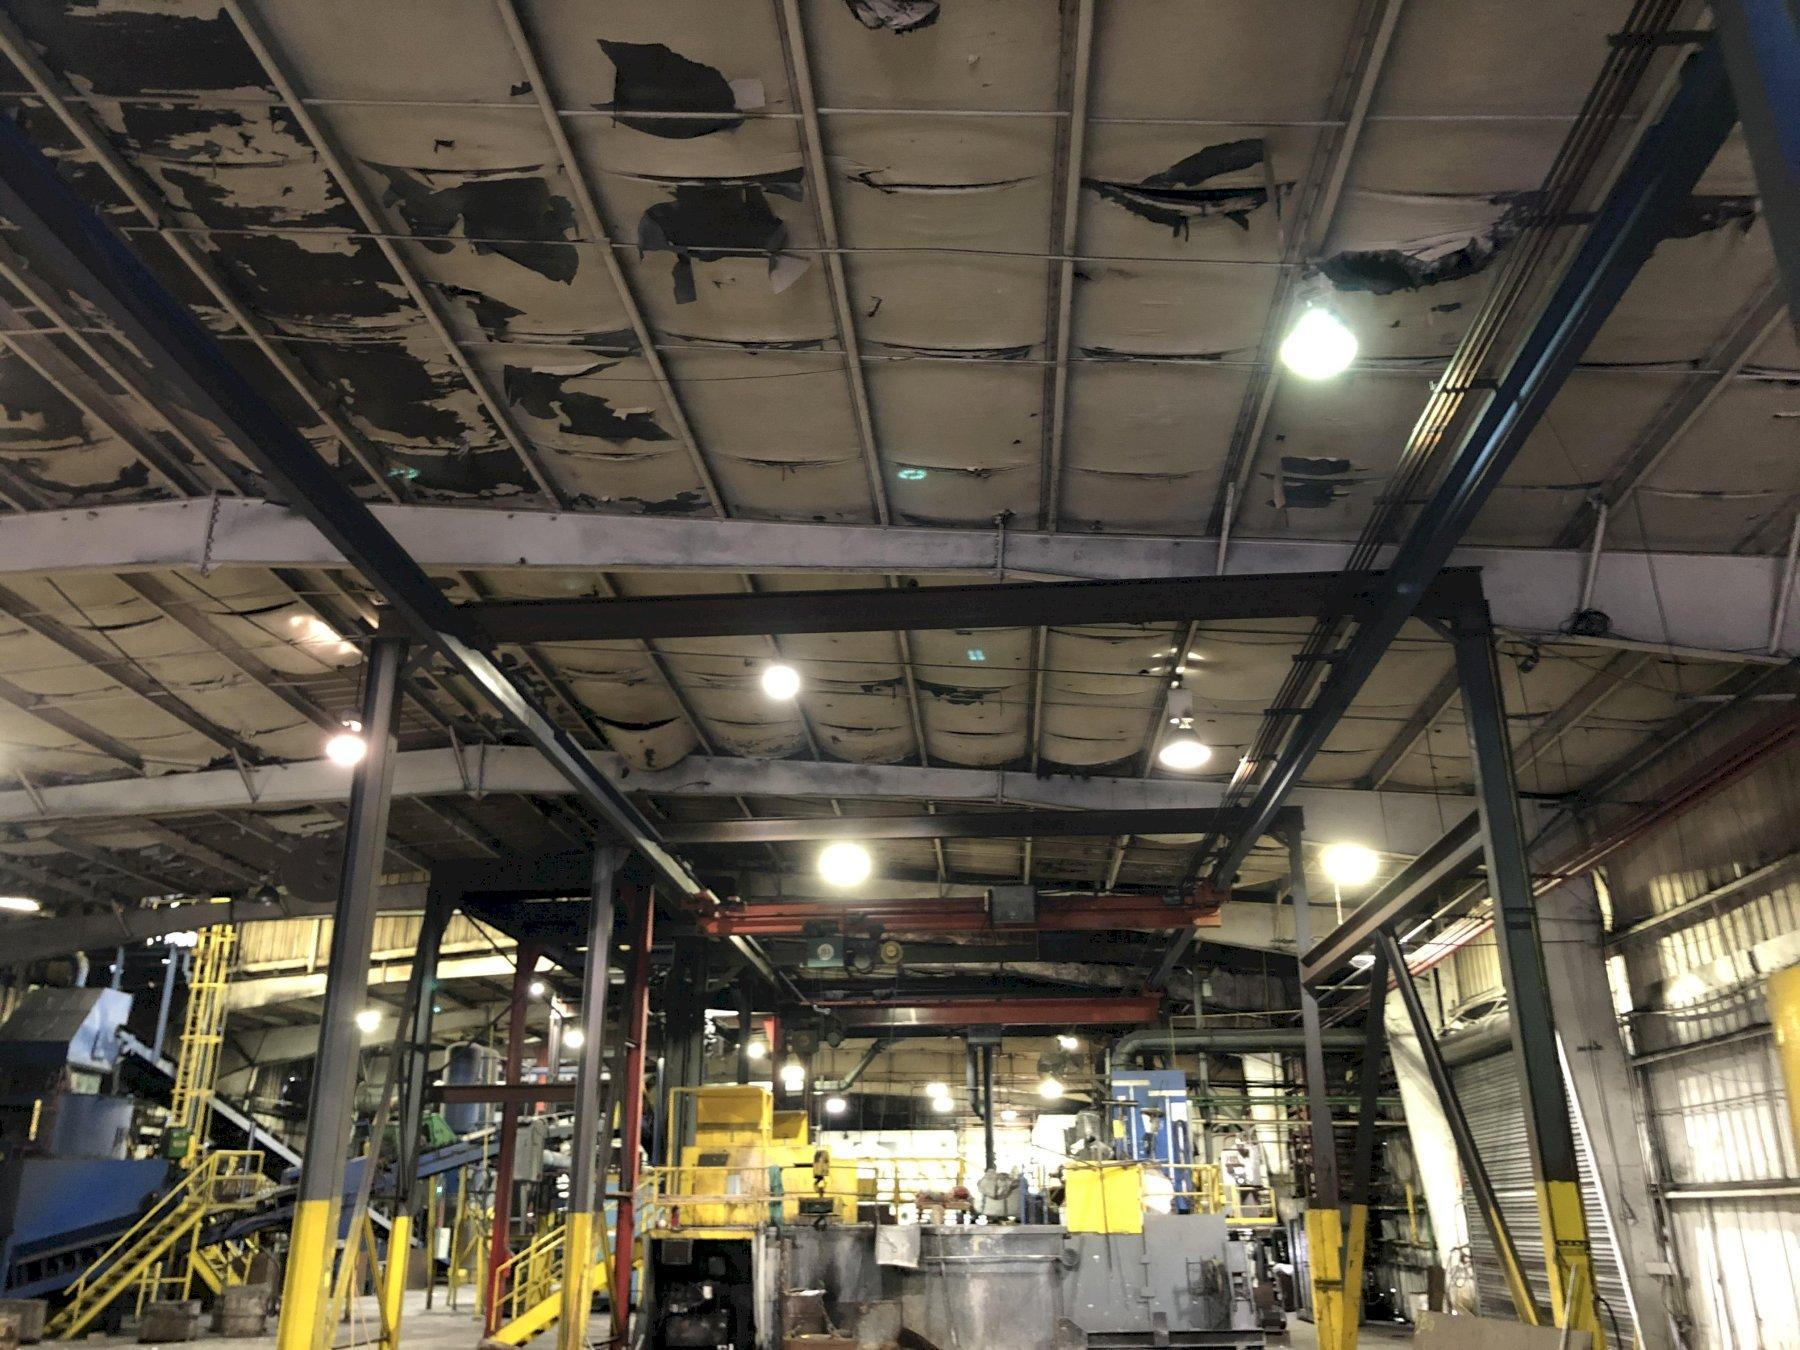 FURNACE CHARGE CRANE SYSTEM WITH APPROX. 100' SELF SUPPORTING RUNWAY AND COLUMNS, 1- APPROX. 25' REMOTE OPERATED BRIDGE CRANE 3 TON CAPACITY, TAG# 12  AND 1- APPROX. 25' PENDENT OPERATED BRIDGE